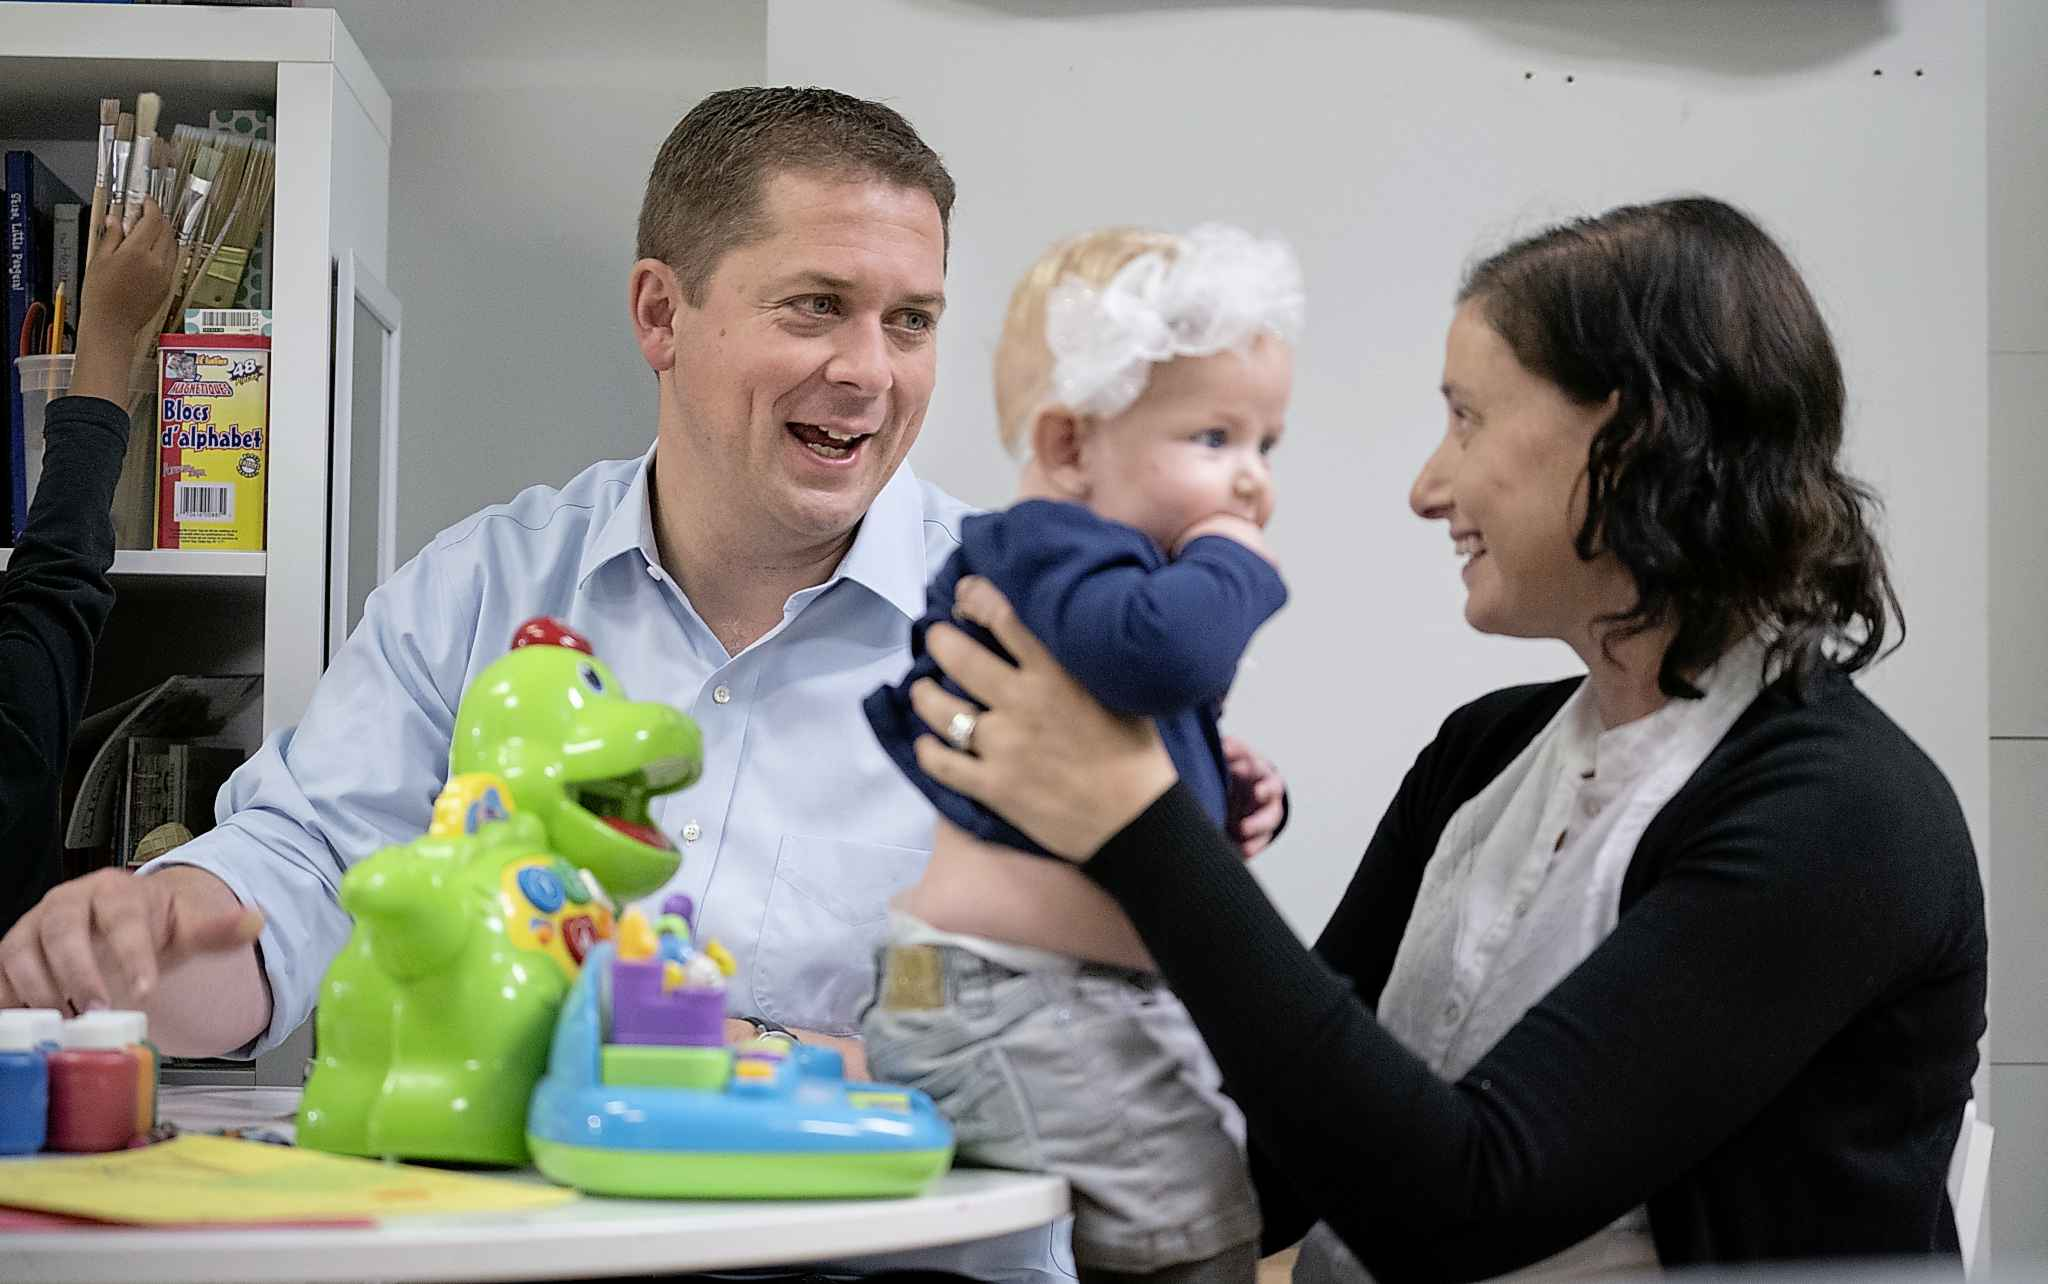 Conservative leader Andrew Scheer chats with a mother holding her child while visiting a daycare in Toronto, on Thursday.